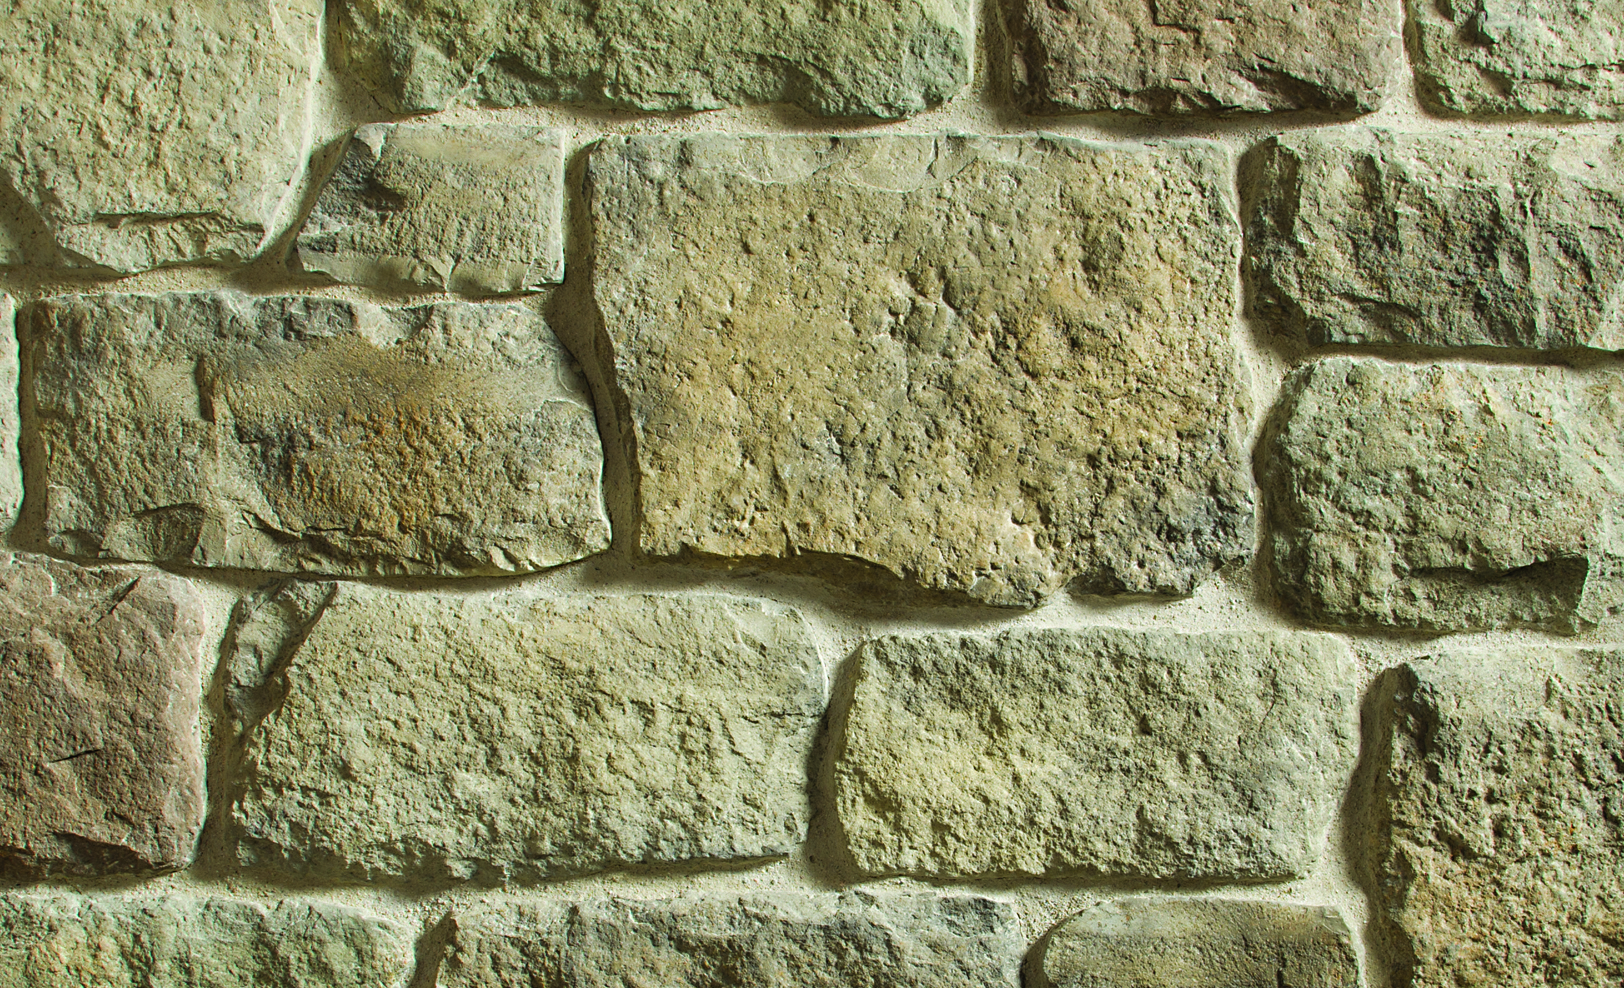 GREENTEA CRAFT ORCHARD LIMESTONE